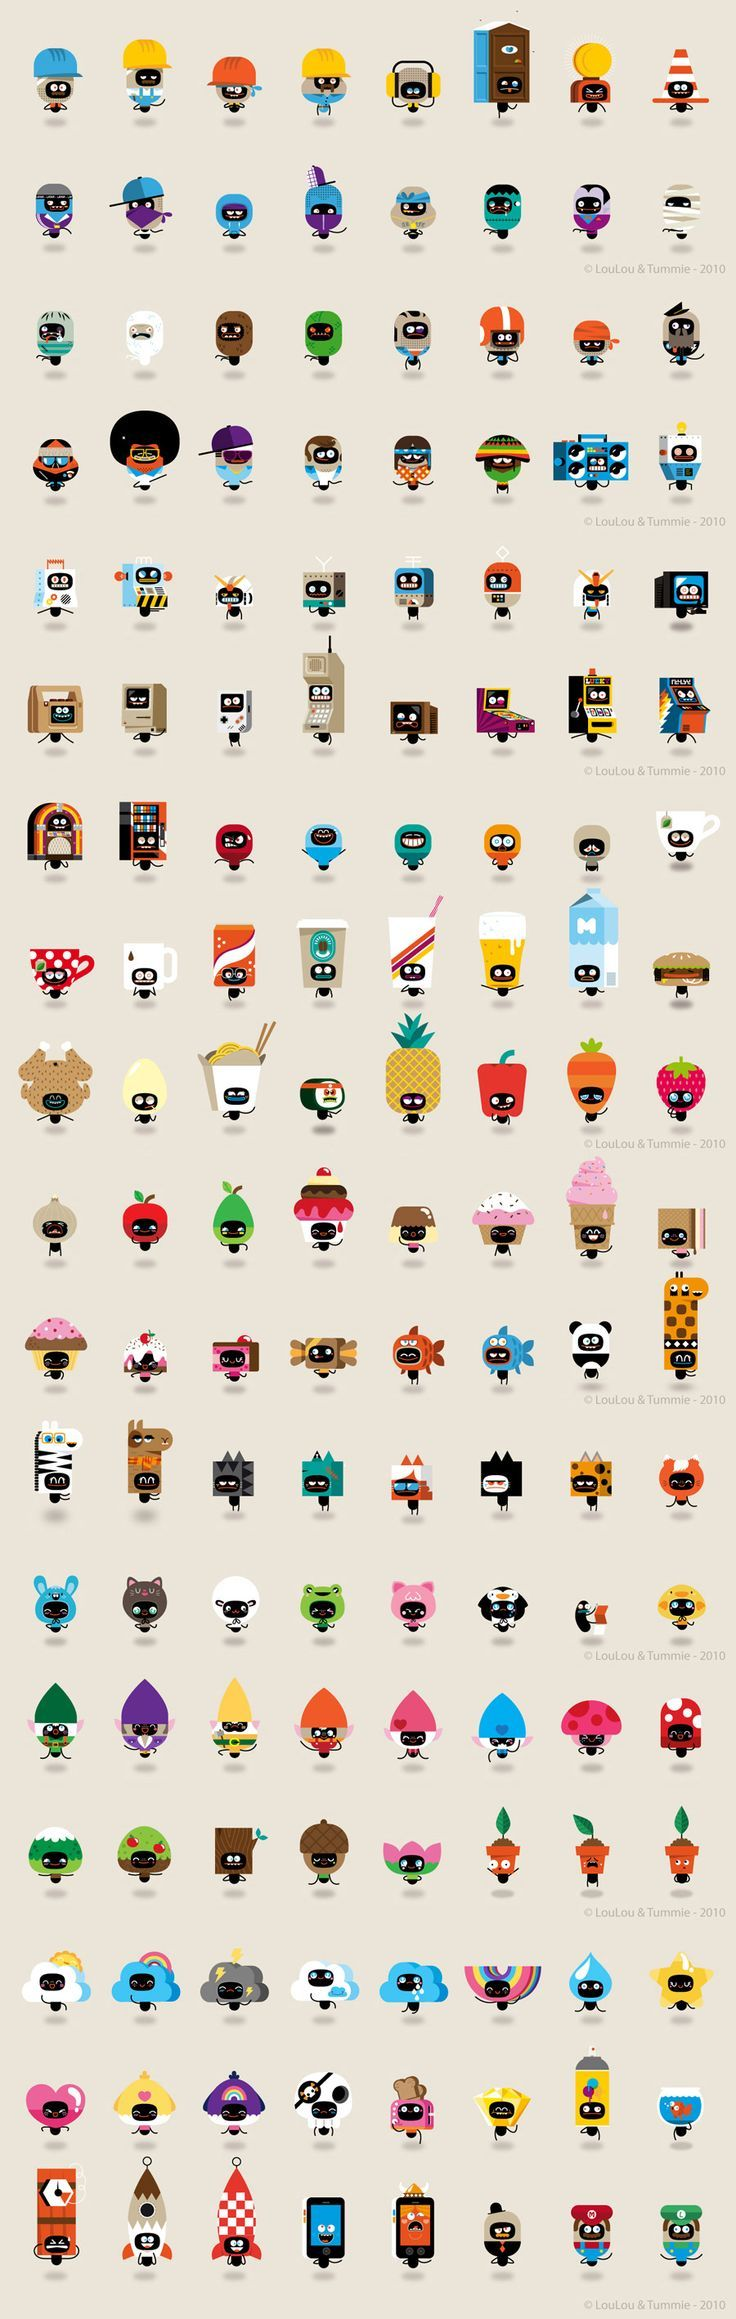 characters-designed-by-loulou-and-tummie.jpg 900×2,836 pixels There so diversely the same!: